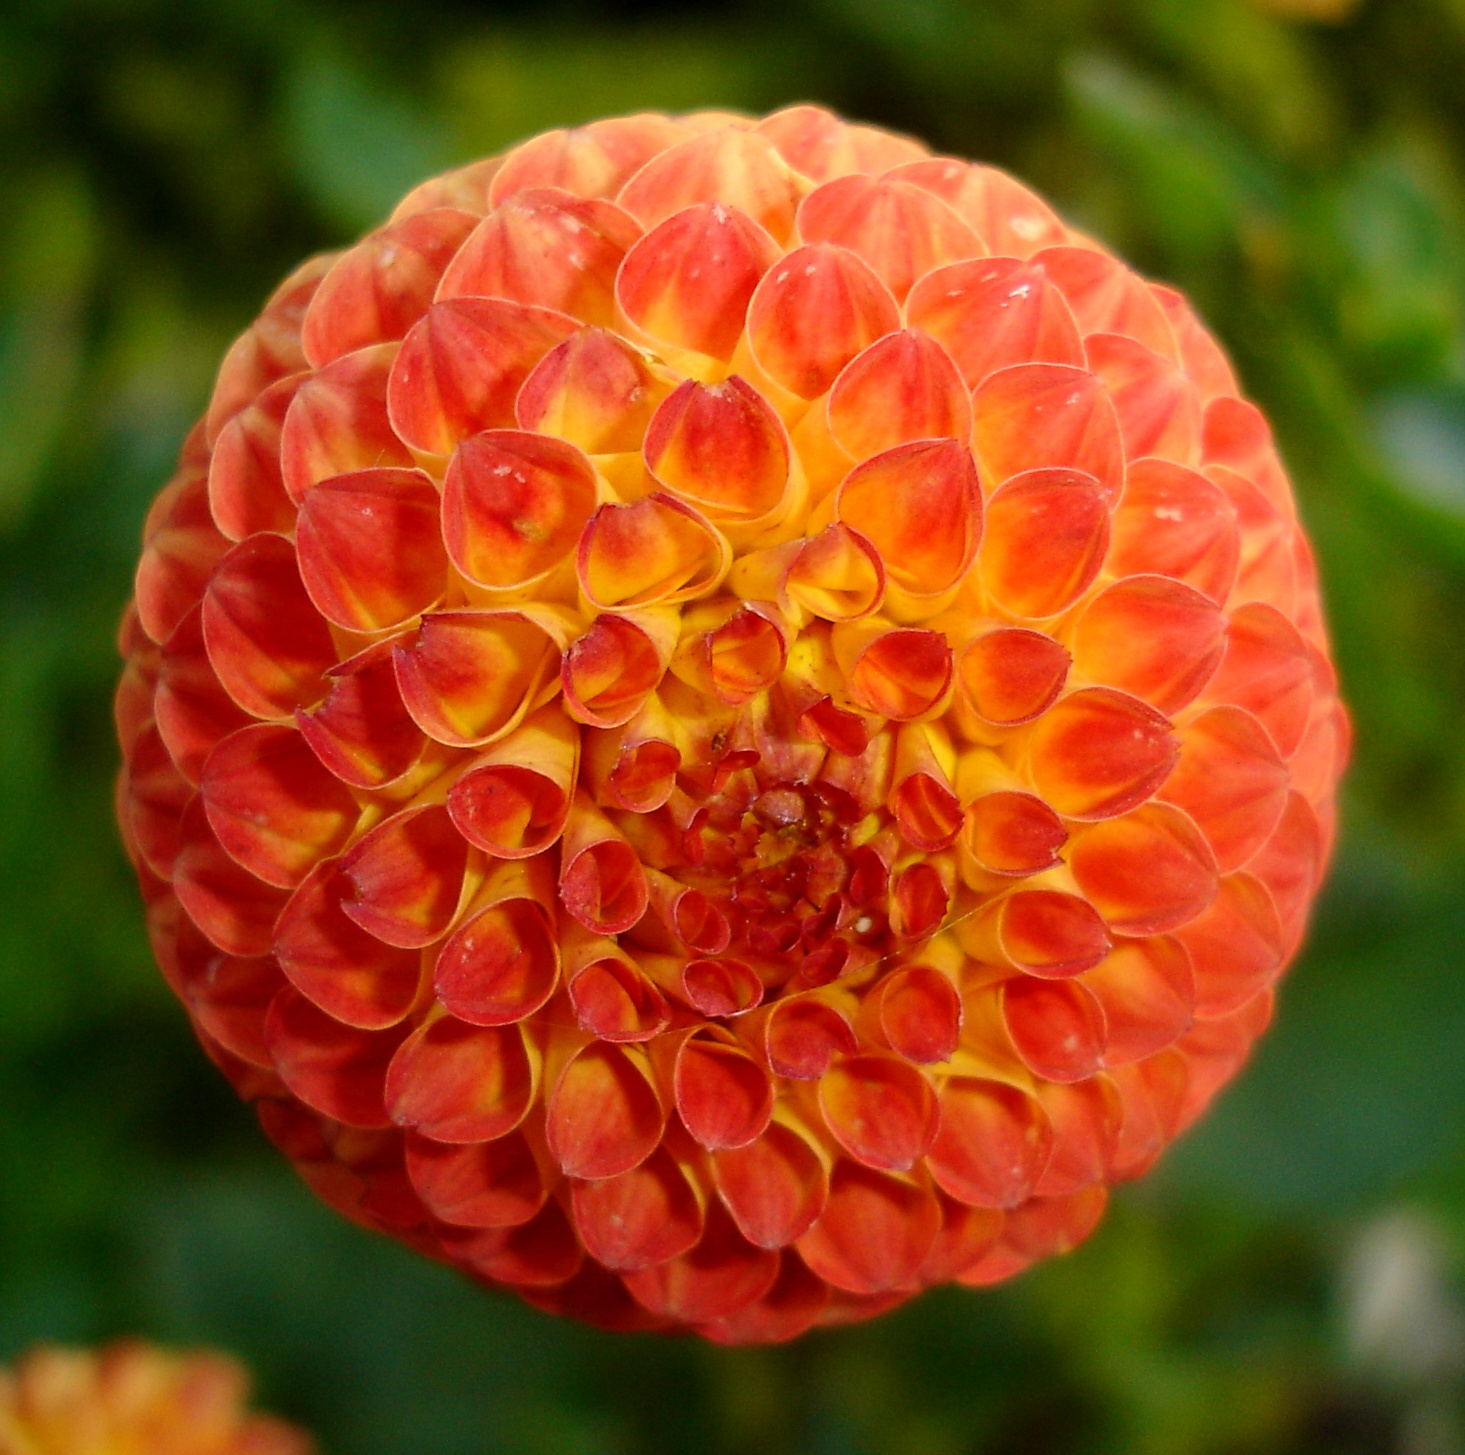 212 The Dahlia Flower Wallpapers